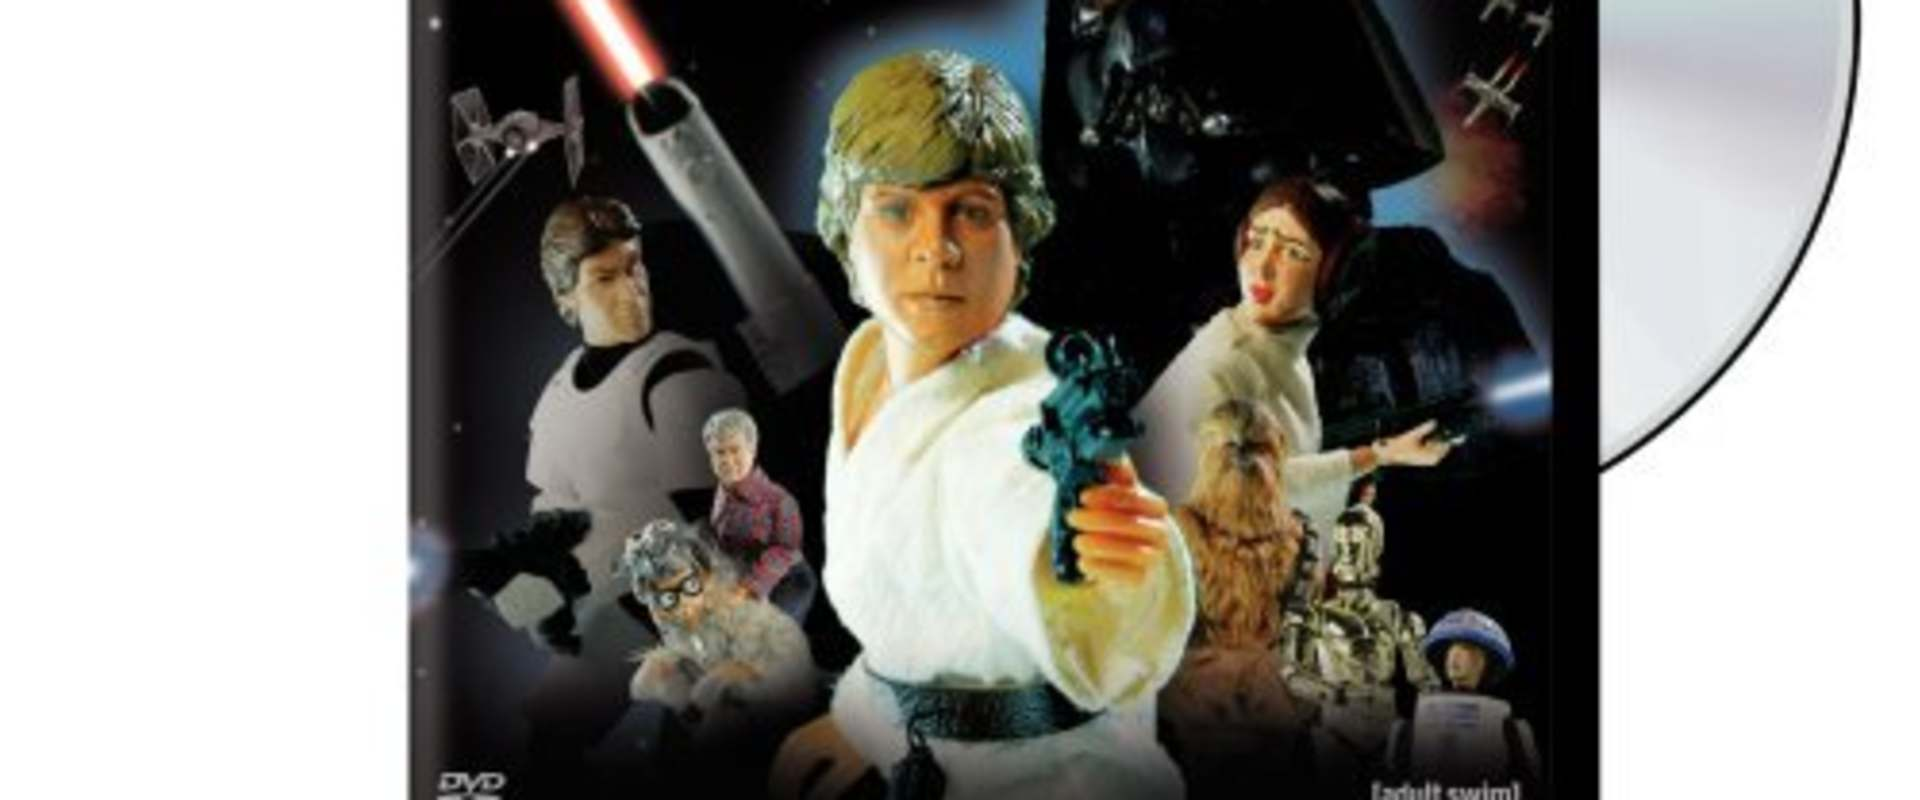 Robot Chicken: Star Wars background 2